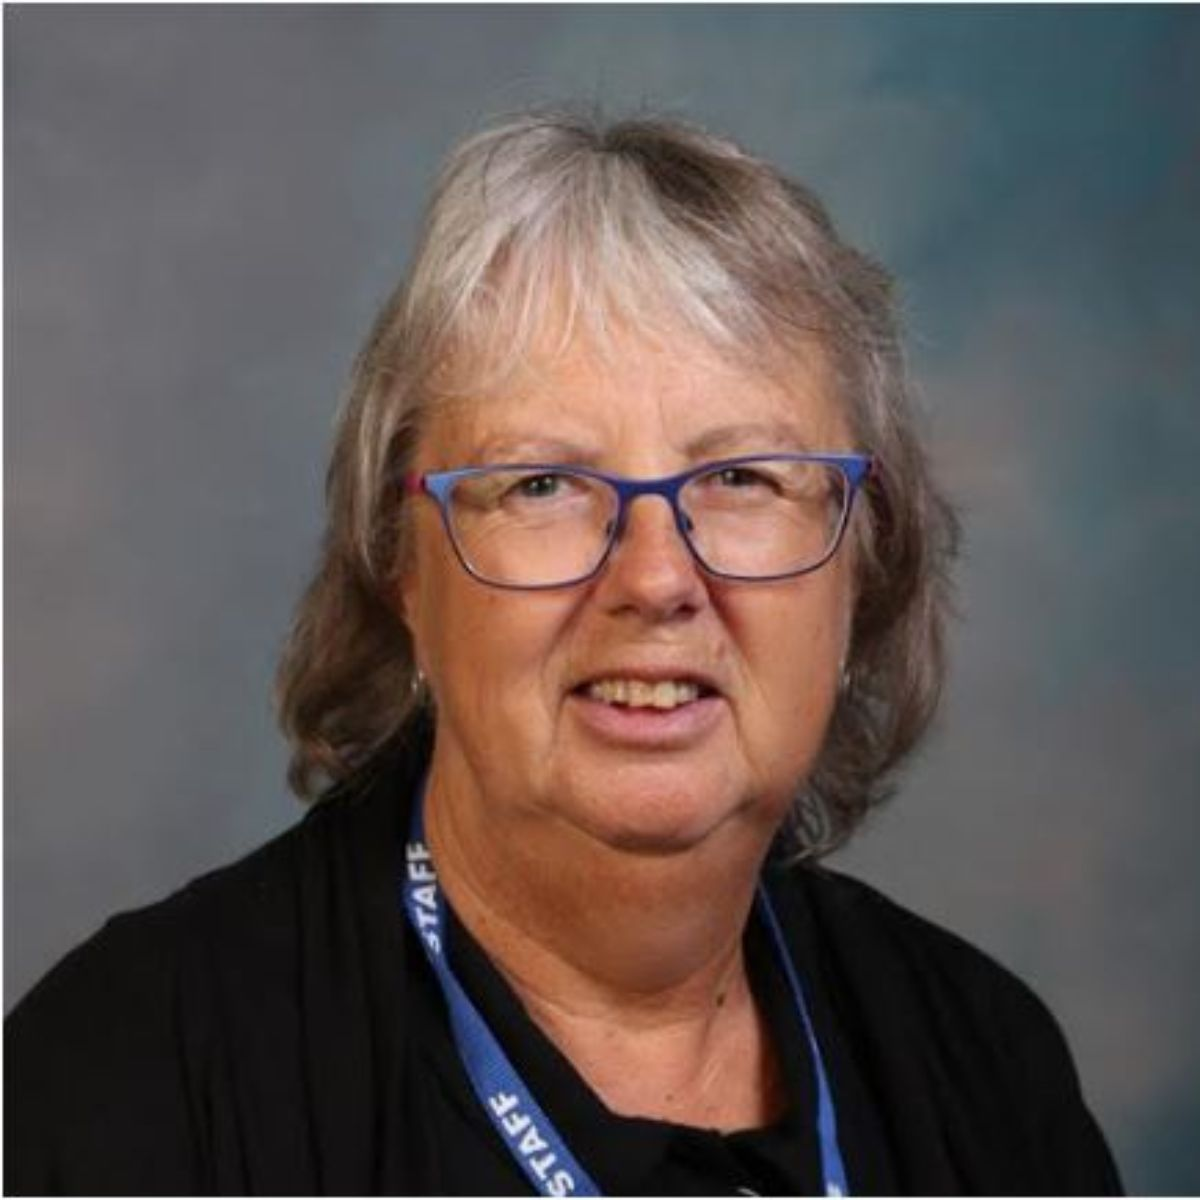 Ms A. Howison